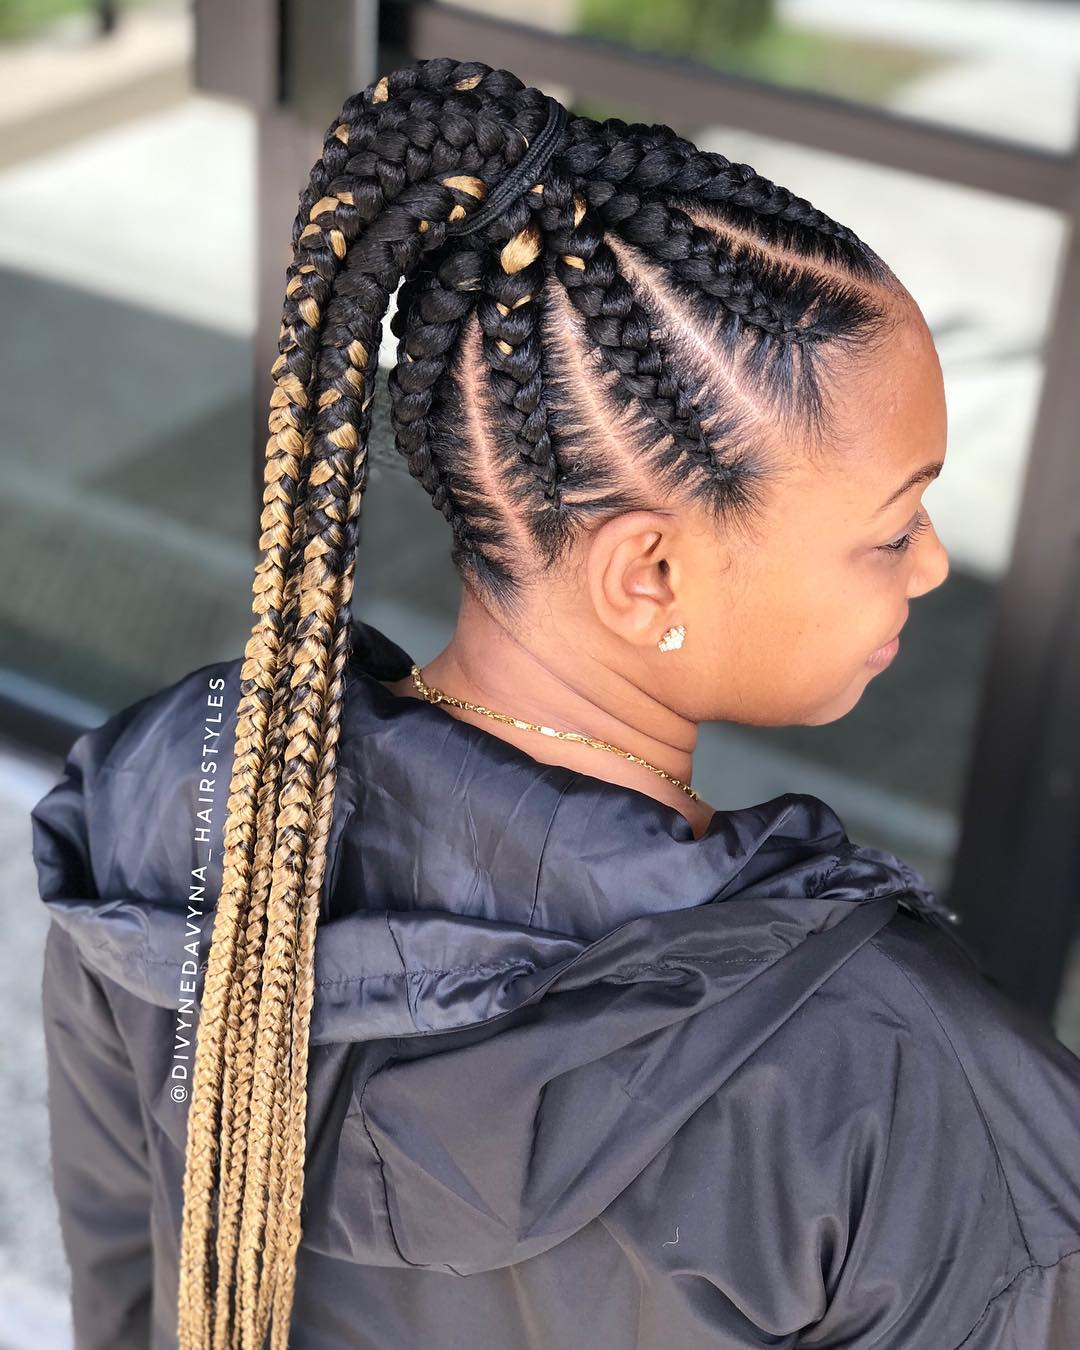 40 Amazing Braids Styles Latest Hairstyles You Simply Must Try Zaineey S Blog